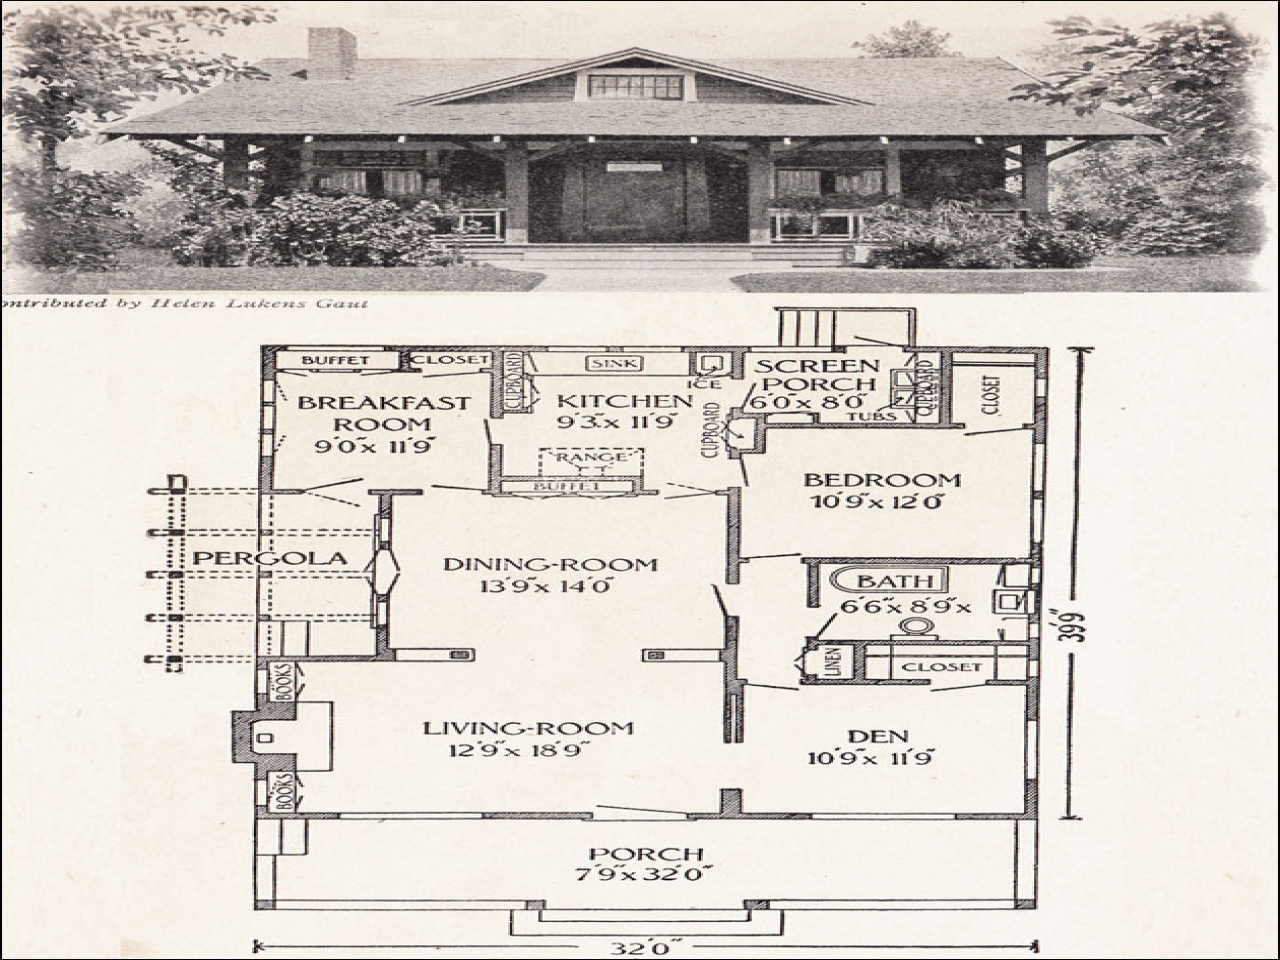 Homes for under 1200 sq ft floor plans bungalow house for House plans under 1200 square feet